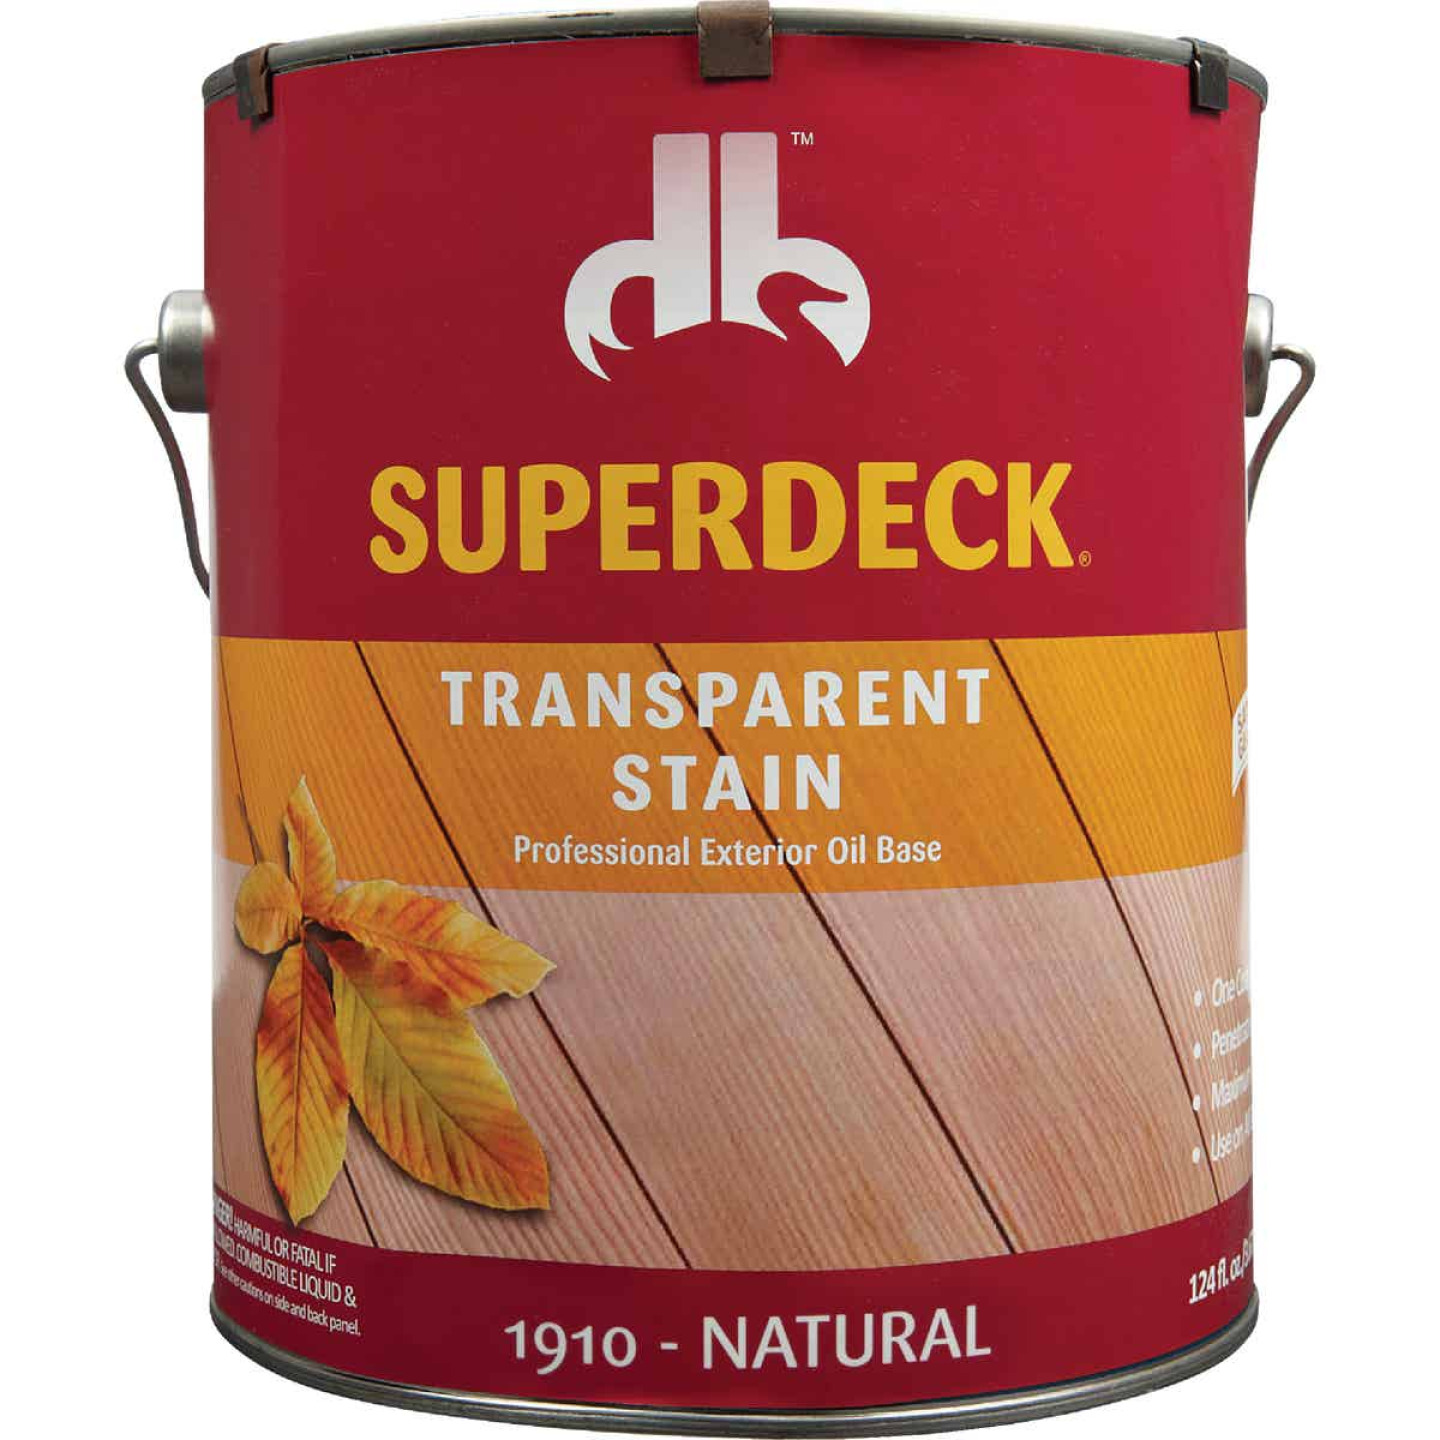 Duckback SUPERDECK Transparent Exterior Stain, Natural, 1 Gal. Image 2